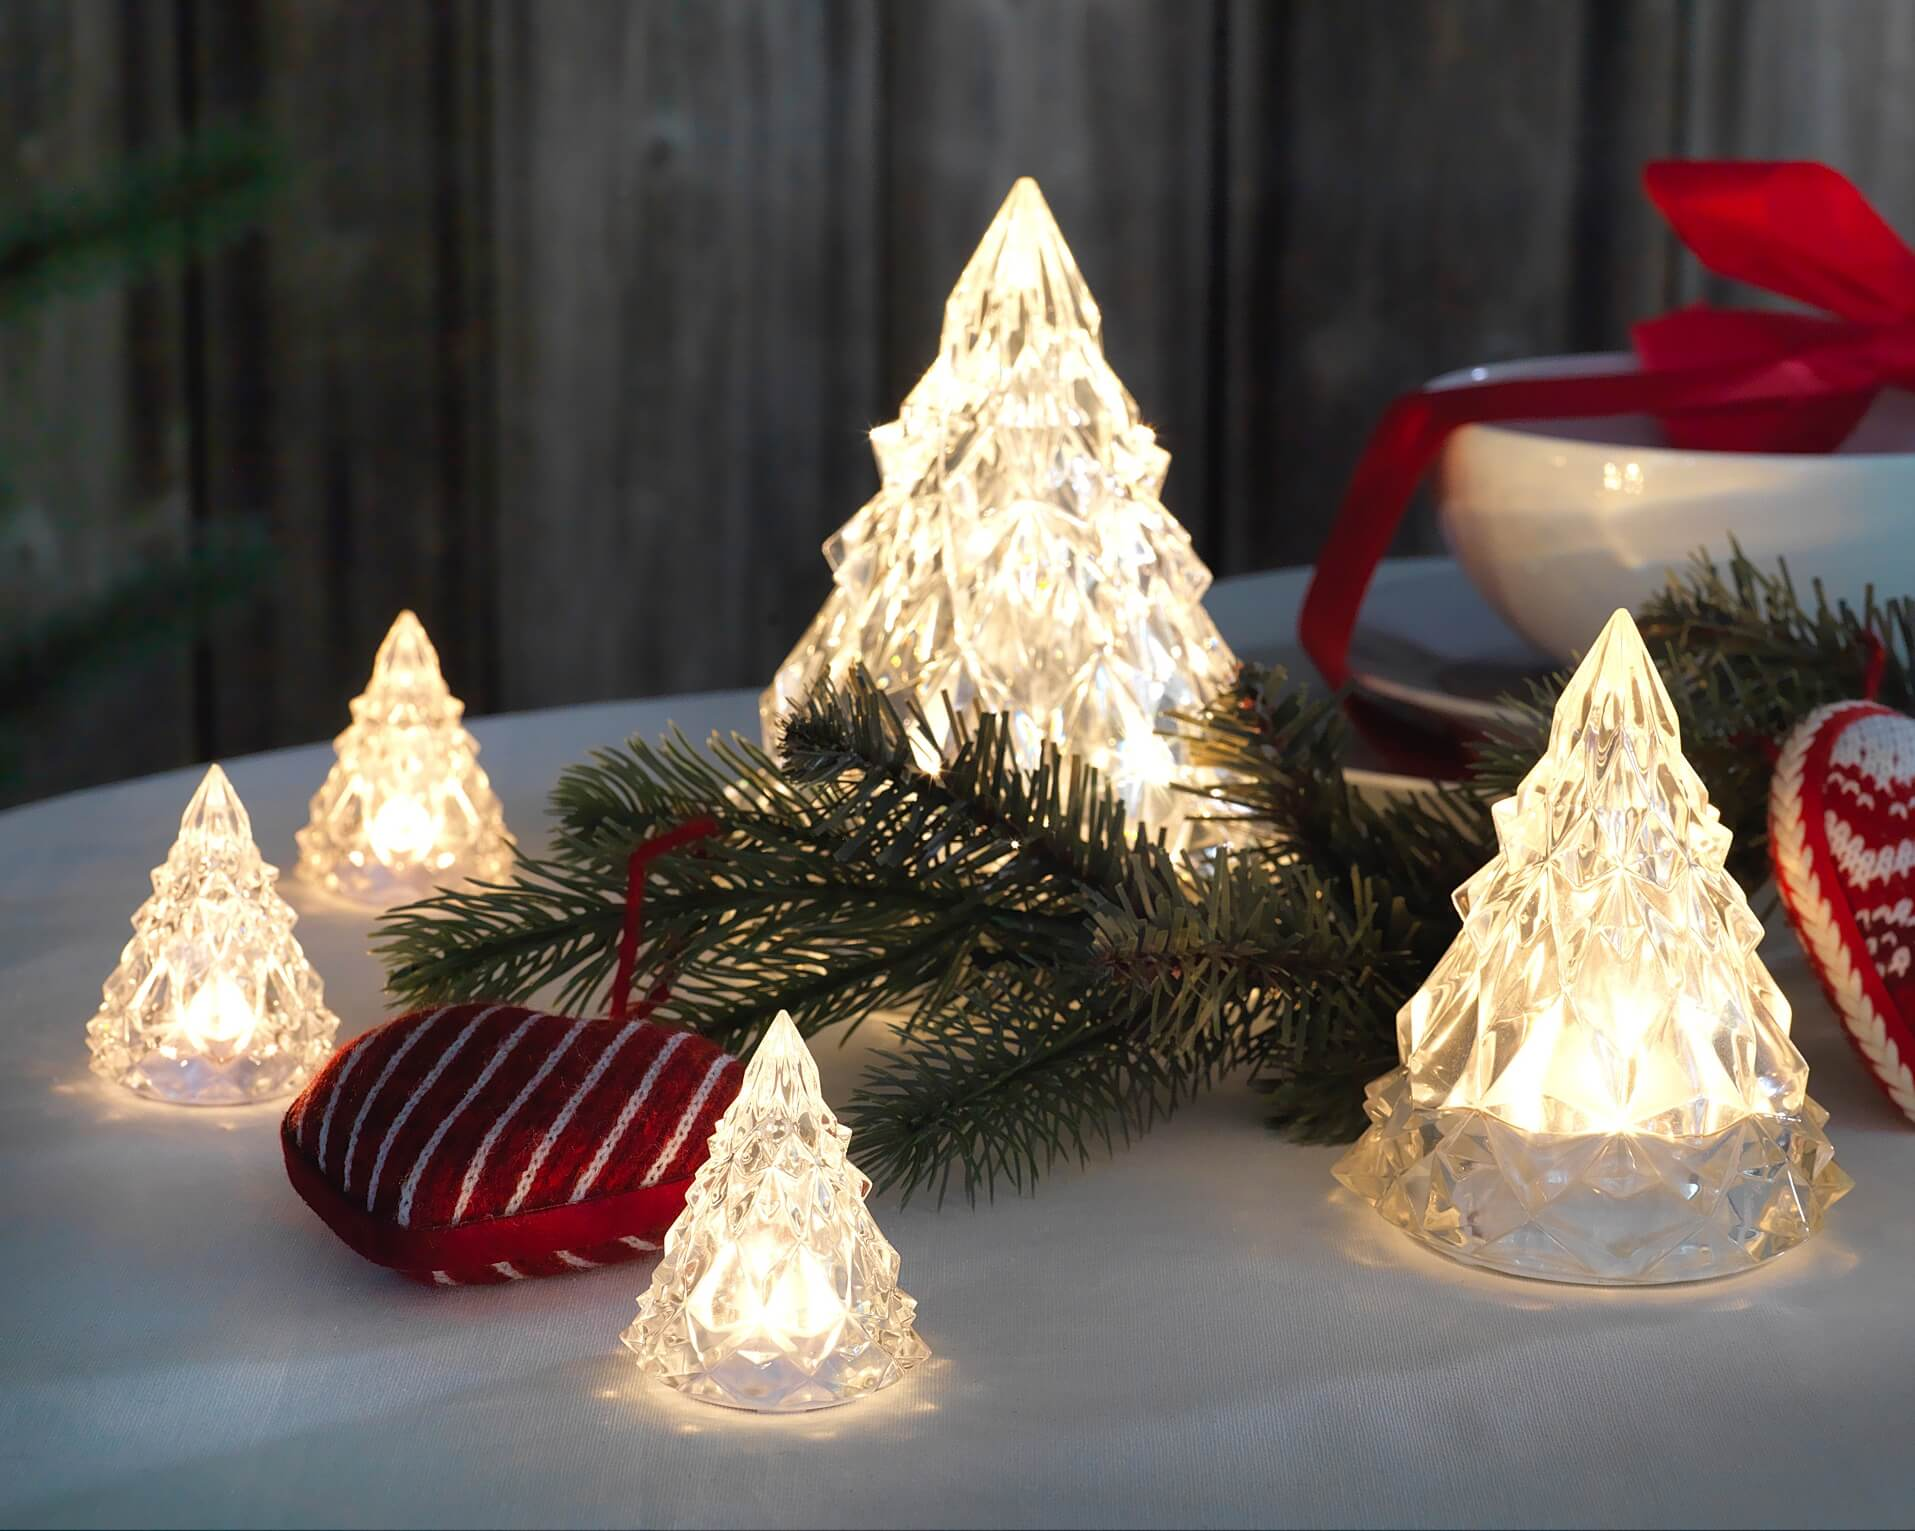 LED decorative acrylic Christmas trees | IKEA